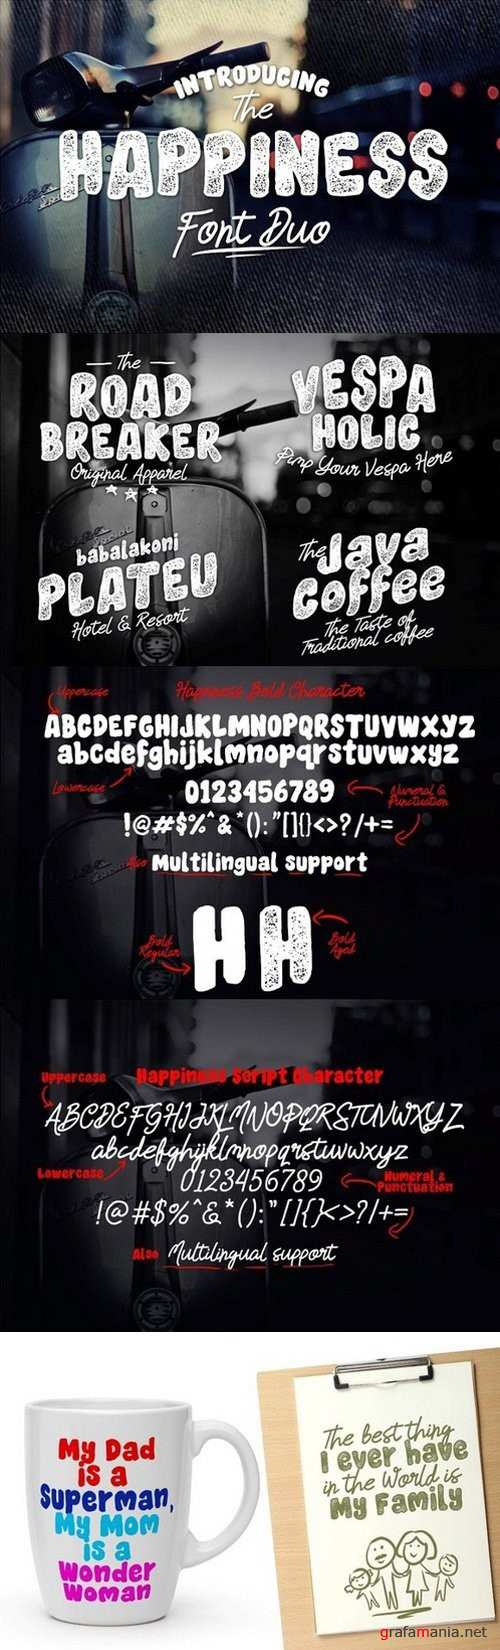 Happiness Font Duo - 930388